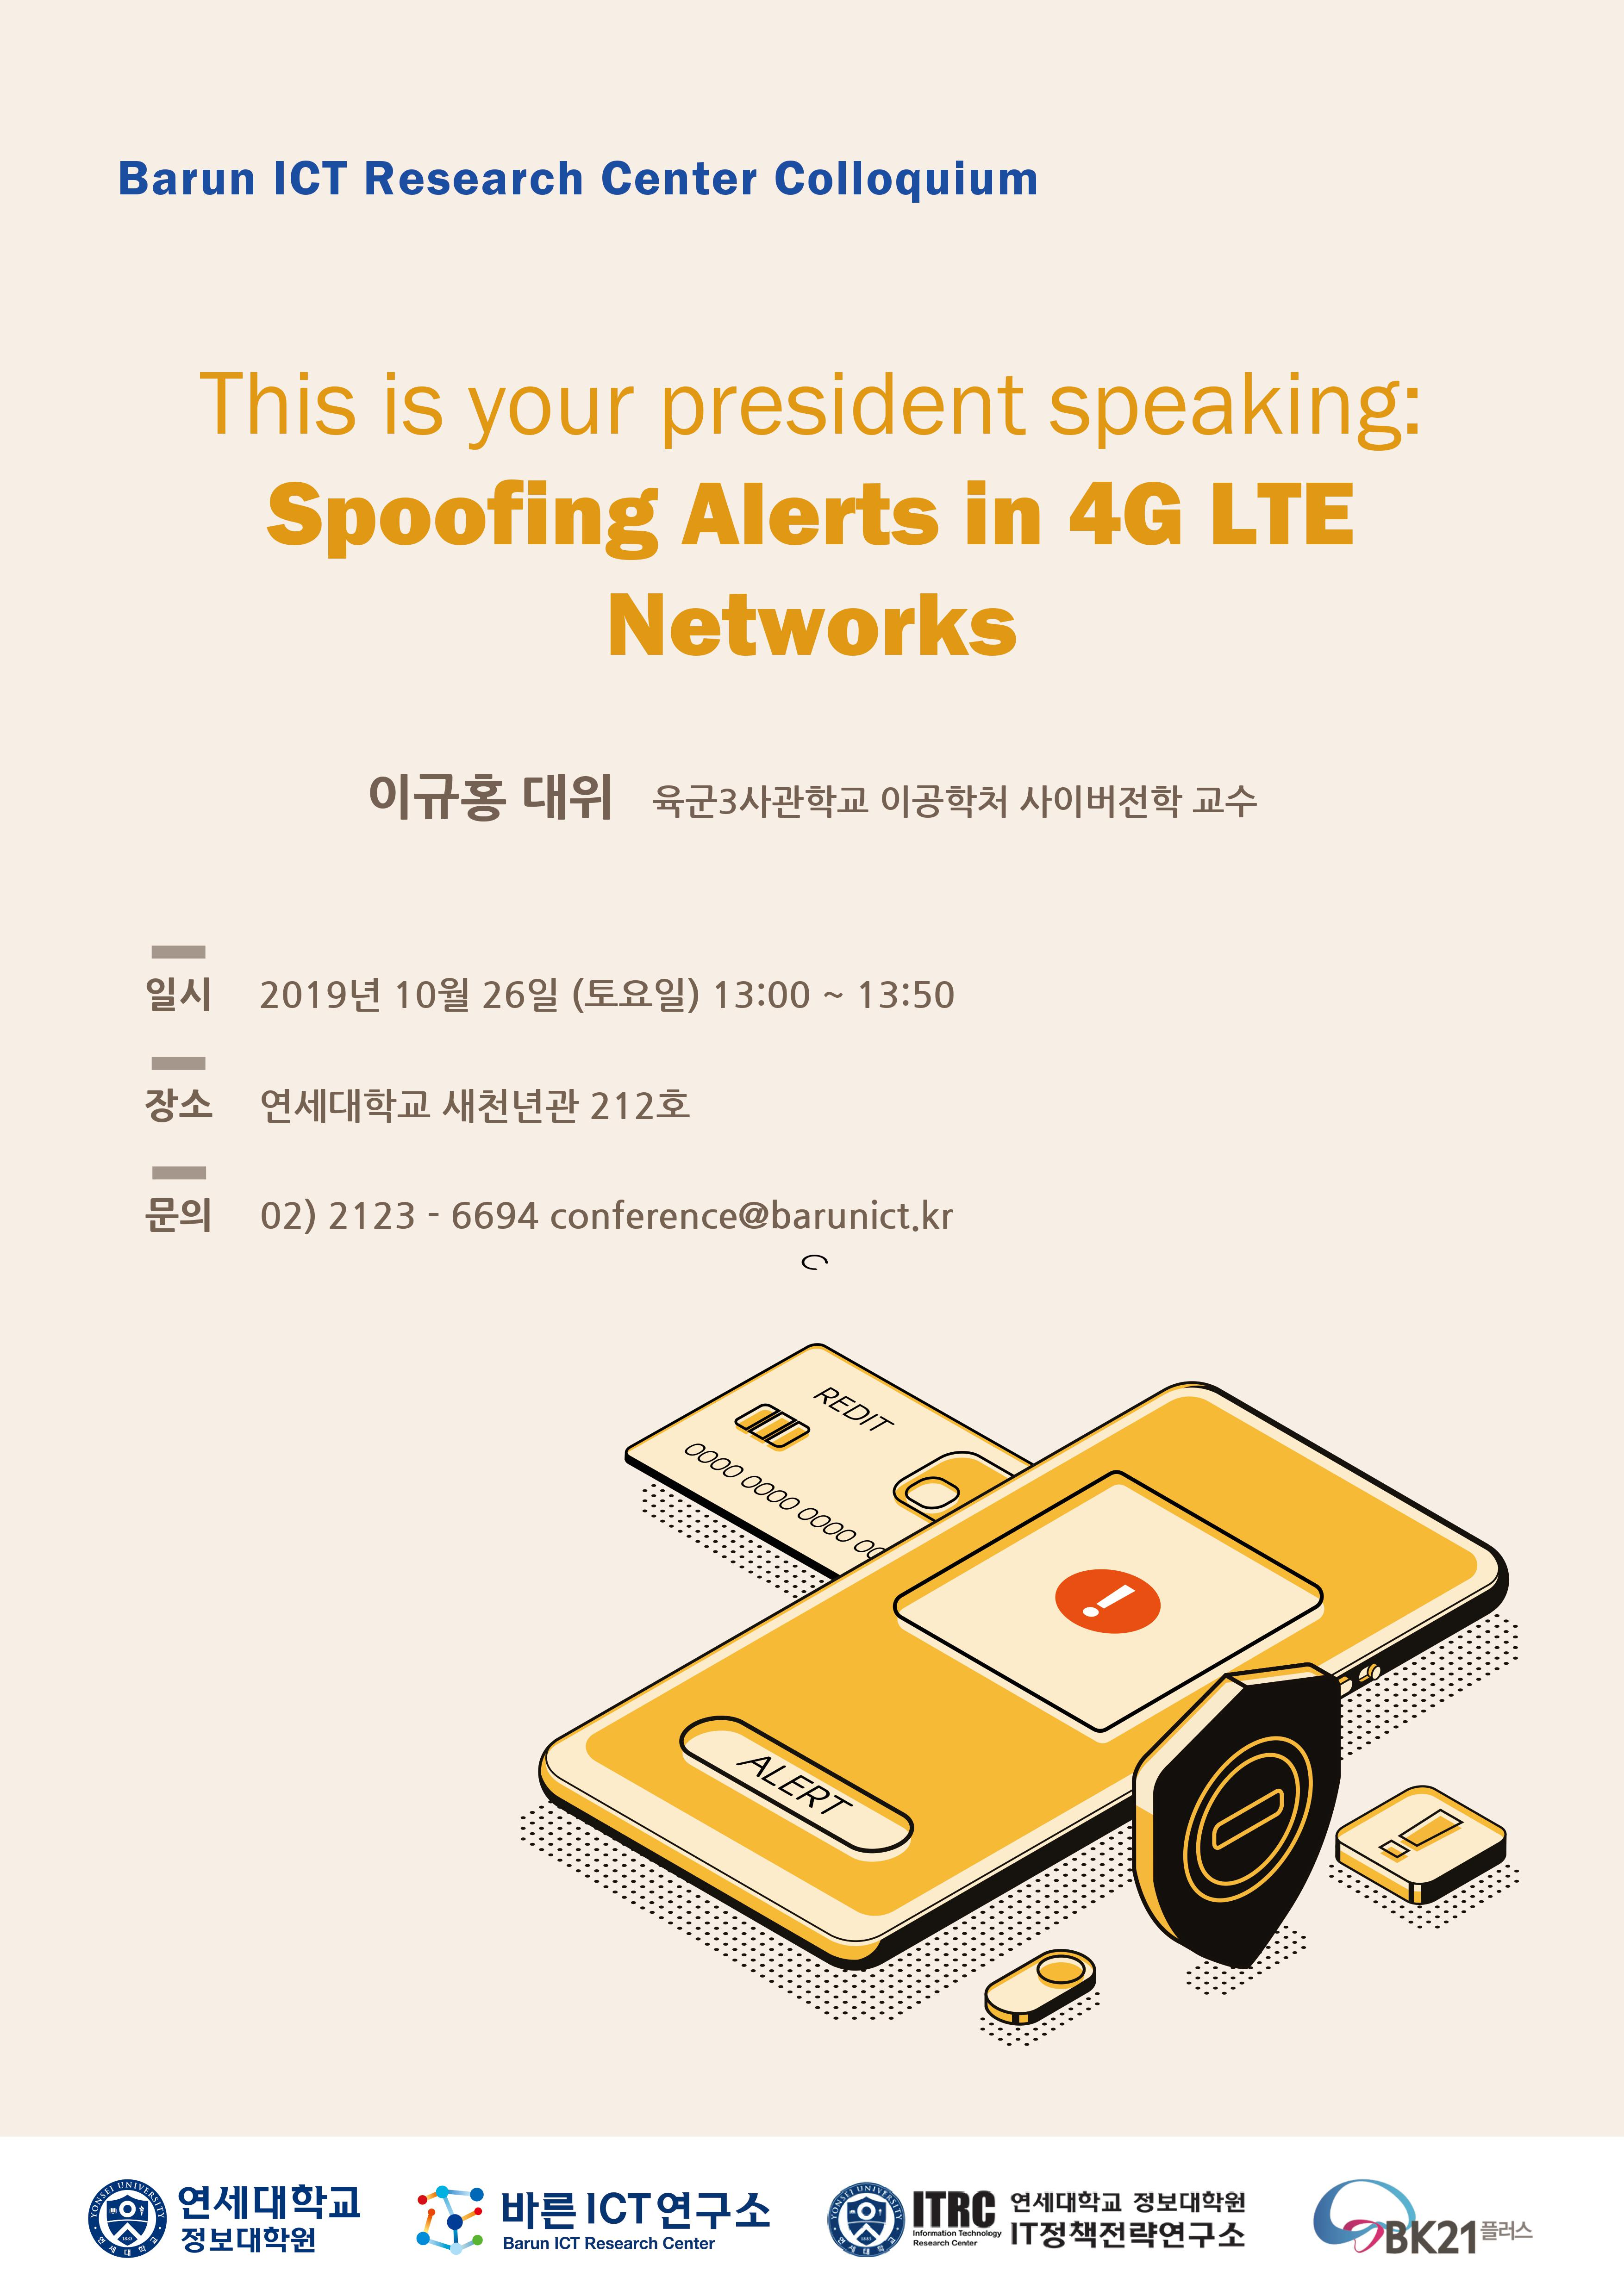 This Is Your President Speaking: Spoofing Alerts In 4G LTE Networks